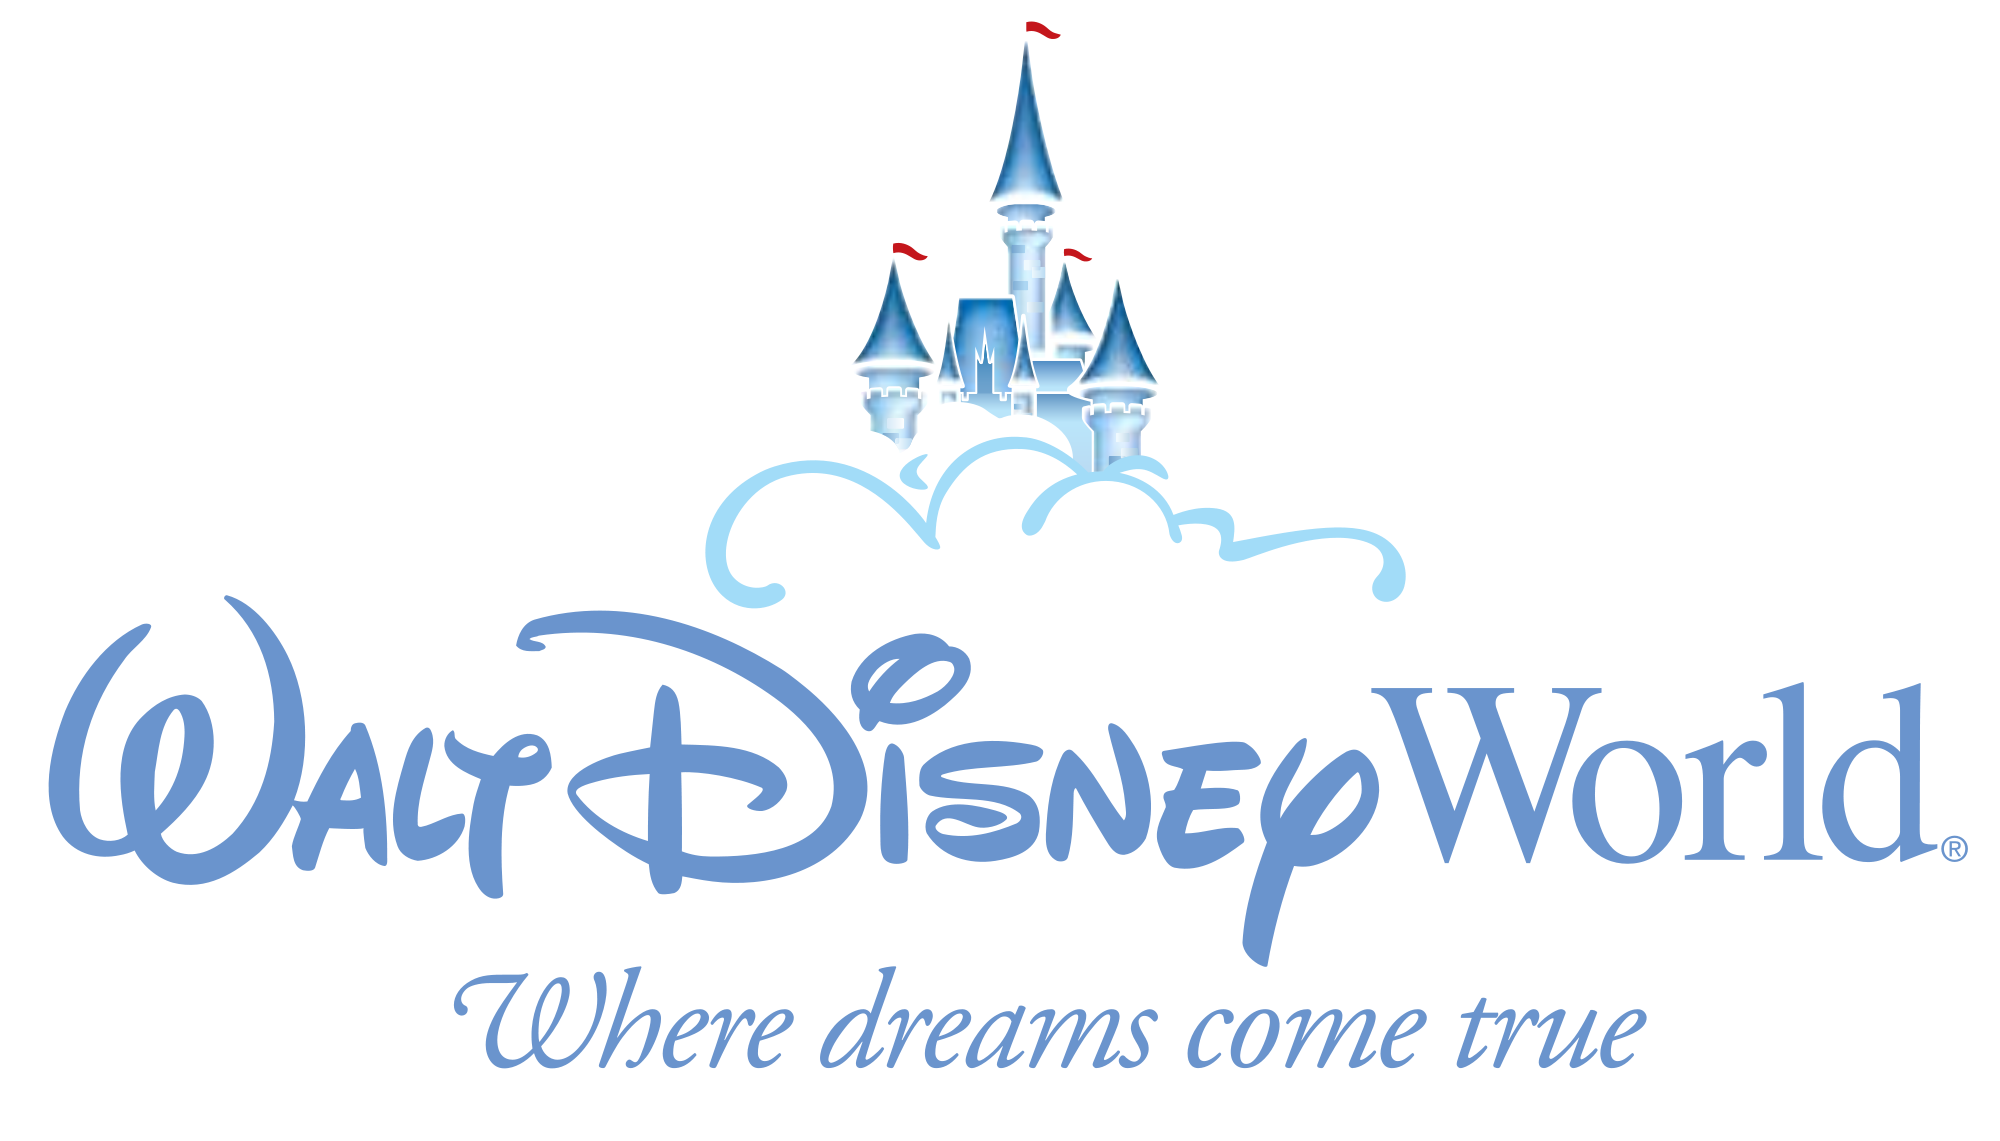 Image - Walt Disney World.png | Disney Parks and Resorts Wiki | FANDOM  powered by Wikia - Walt Disney PNG